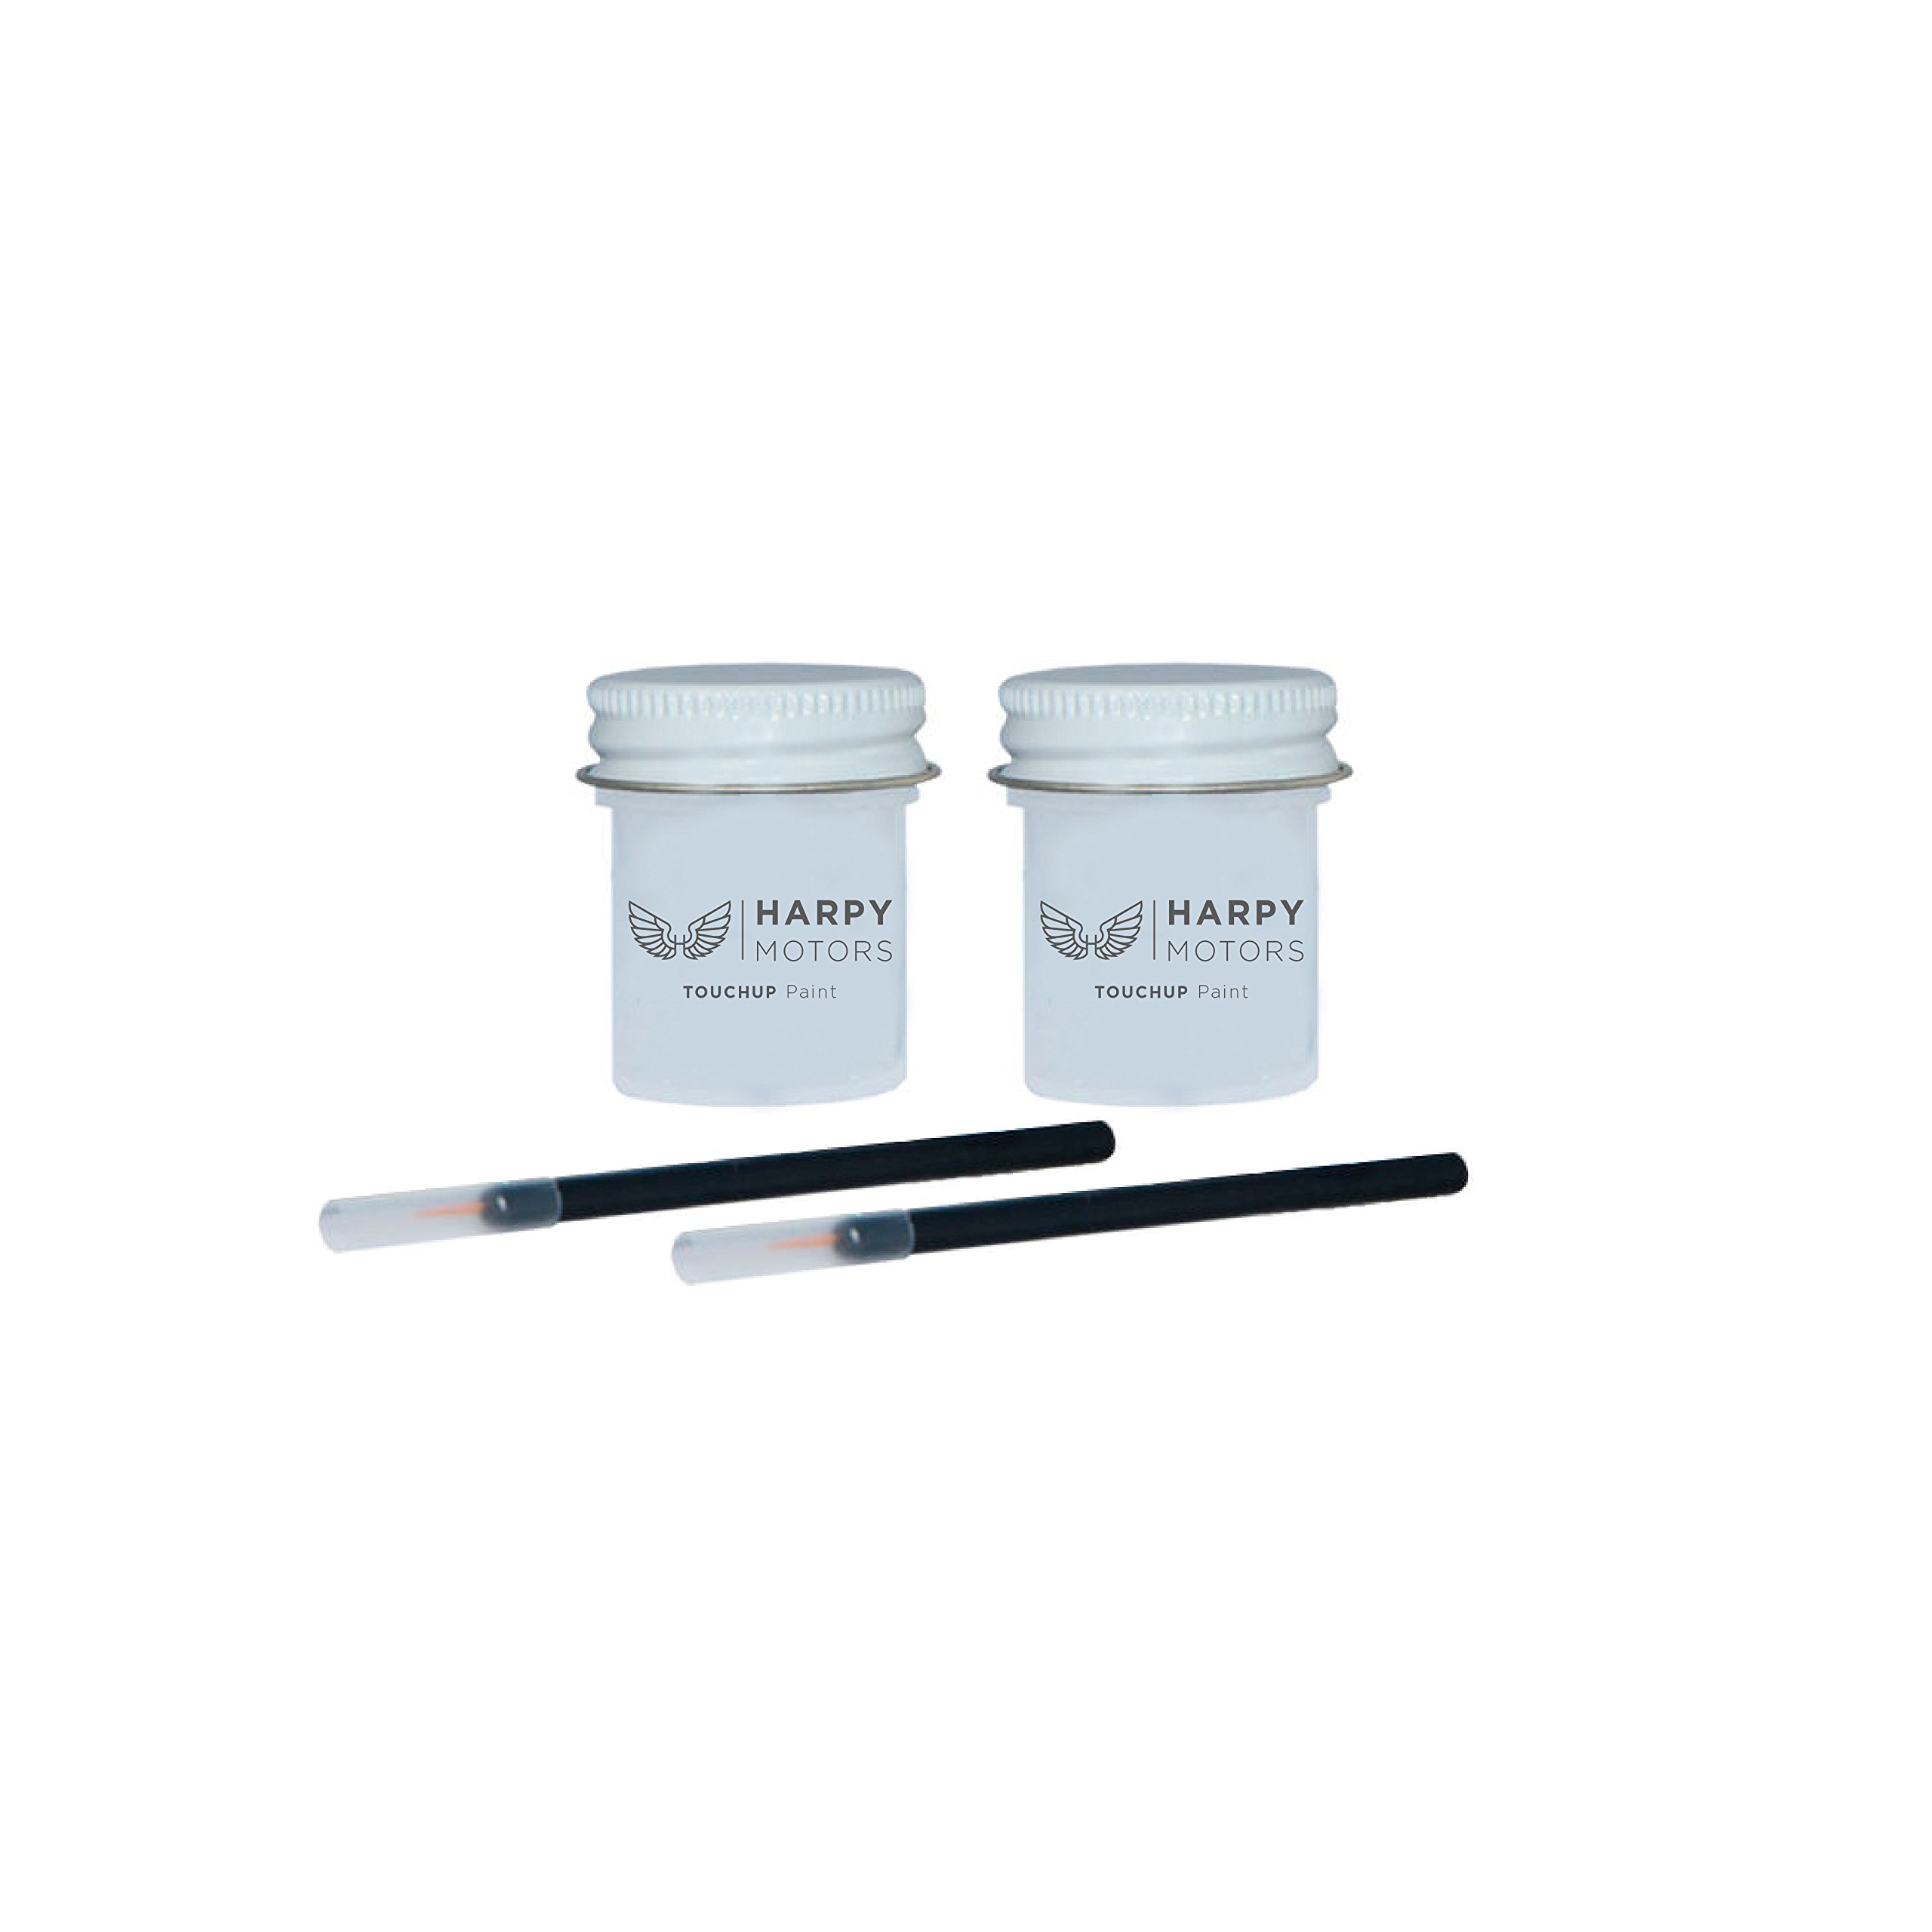 Harpy Motors 1/2 oz Touch up Paint Kit Basecoat Clearcoat with Brush Compatible with 2007-2012 Lexus LS460 1F2 Mercury Metallic -Color Match Guaranteed by Harpy Motors